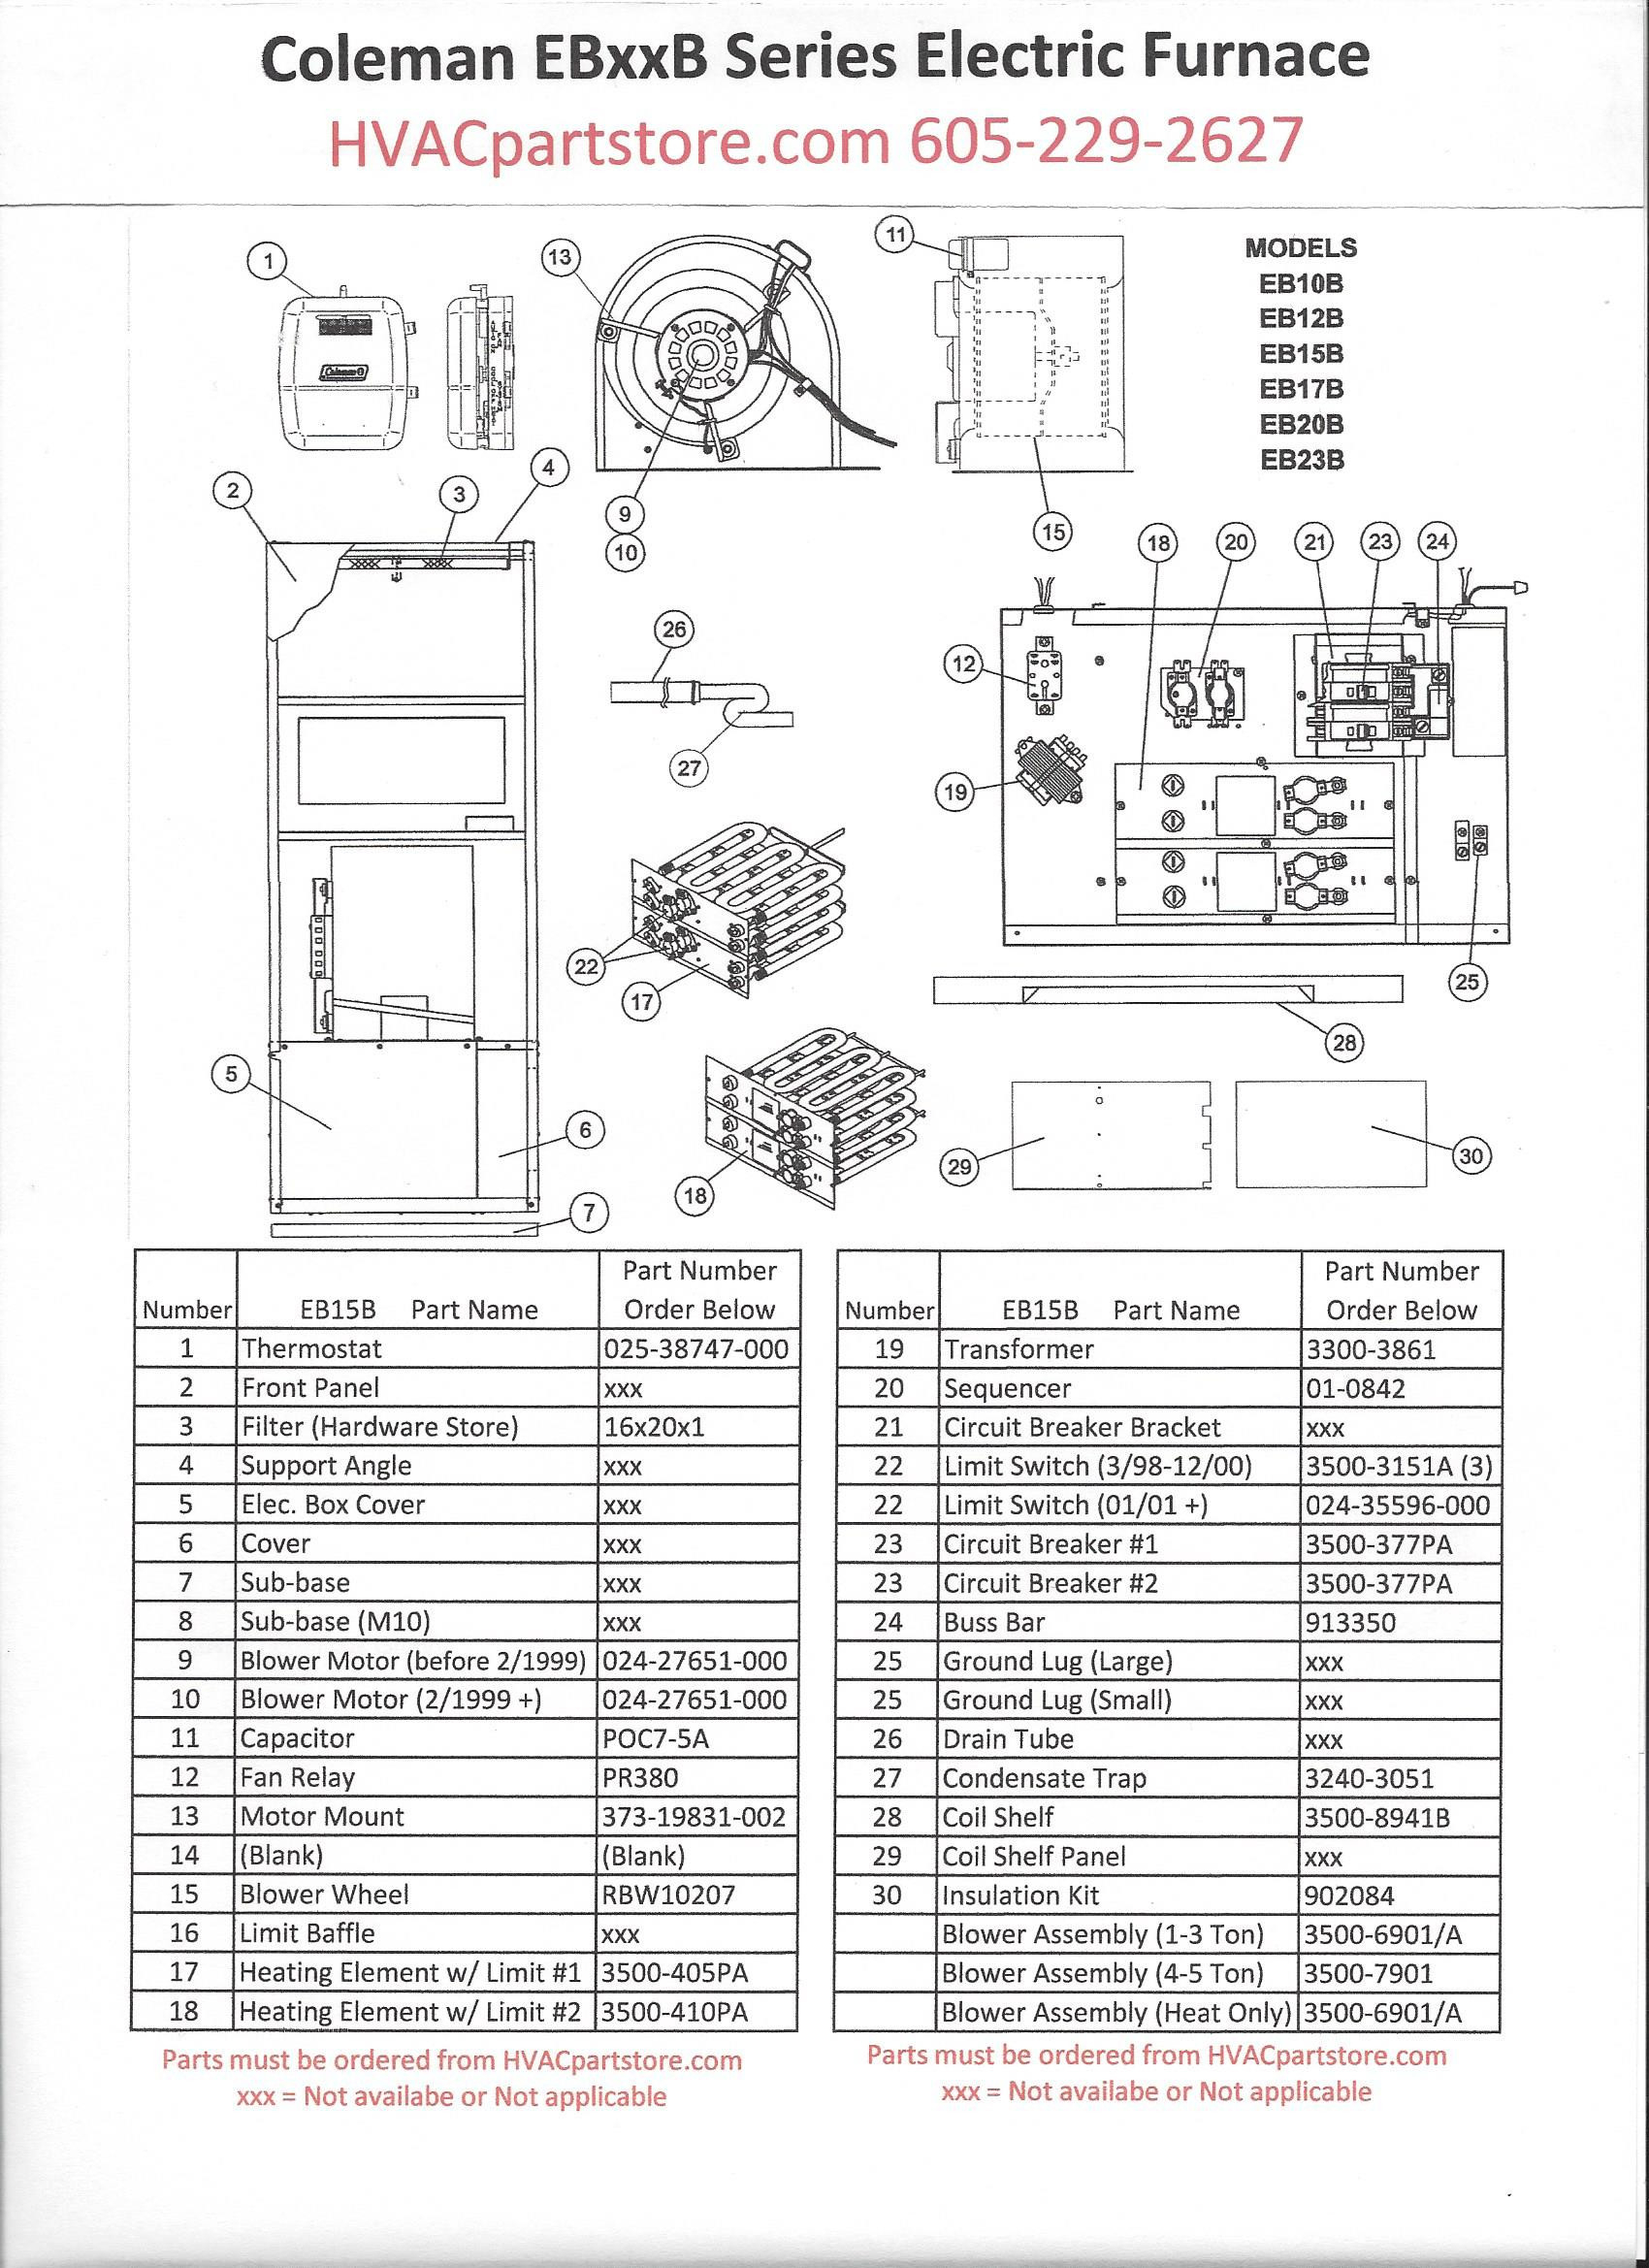 intertherm ac unit wiring diagram Collection-Heil Ac Wiring Diagram Refrence Beautiful Intertherm Electric Furnace Wiring Diagram 20 For Boss 9-g